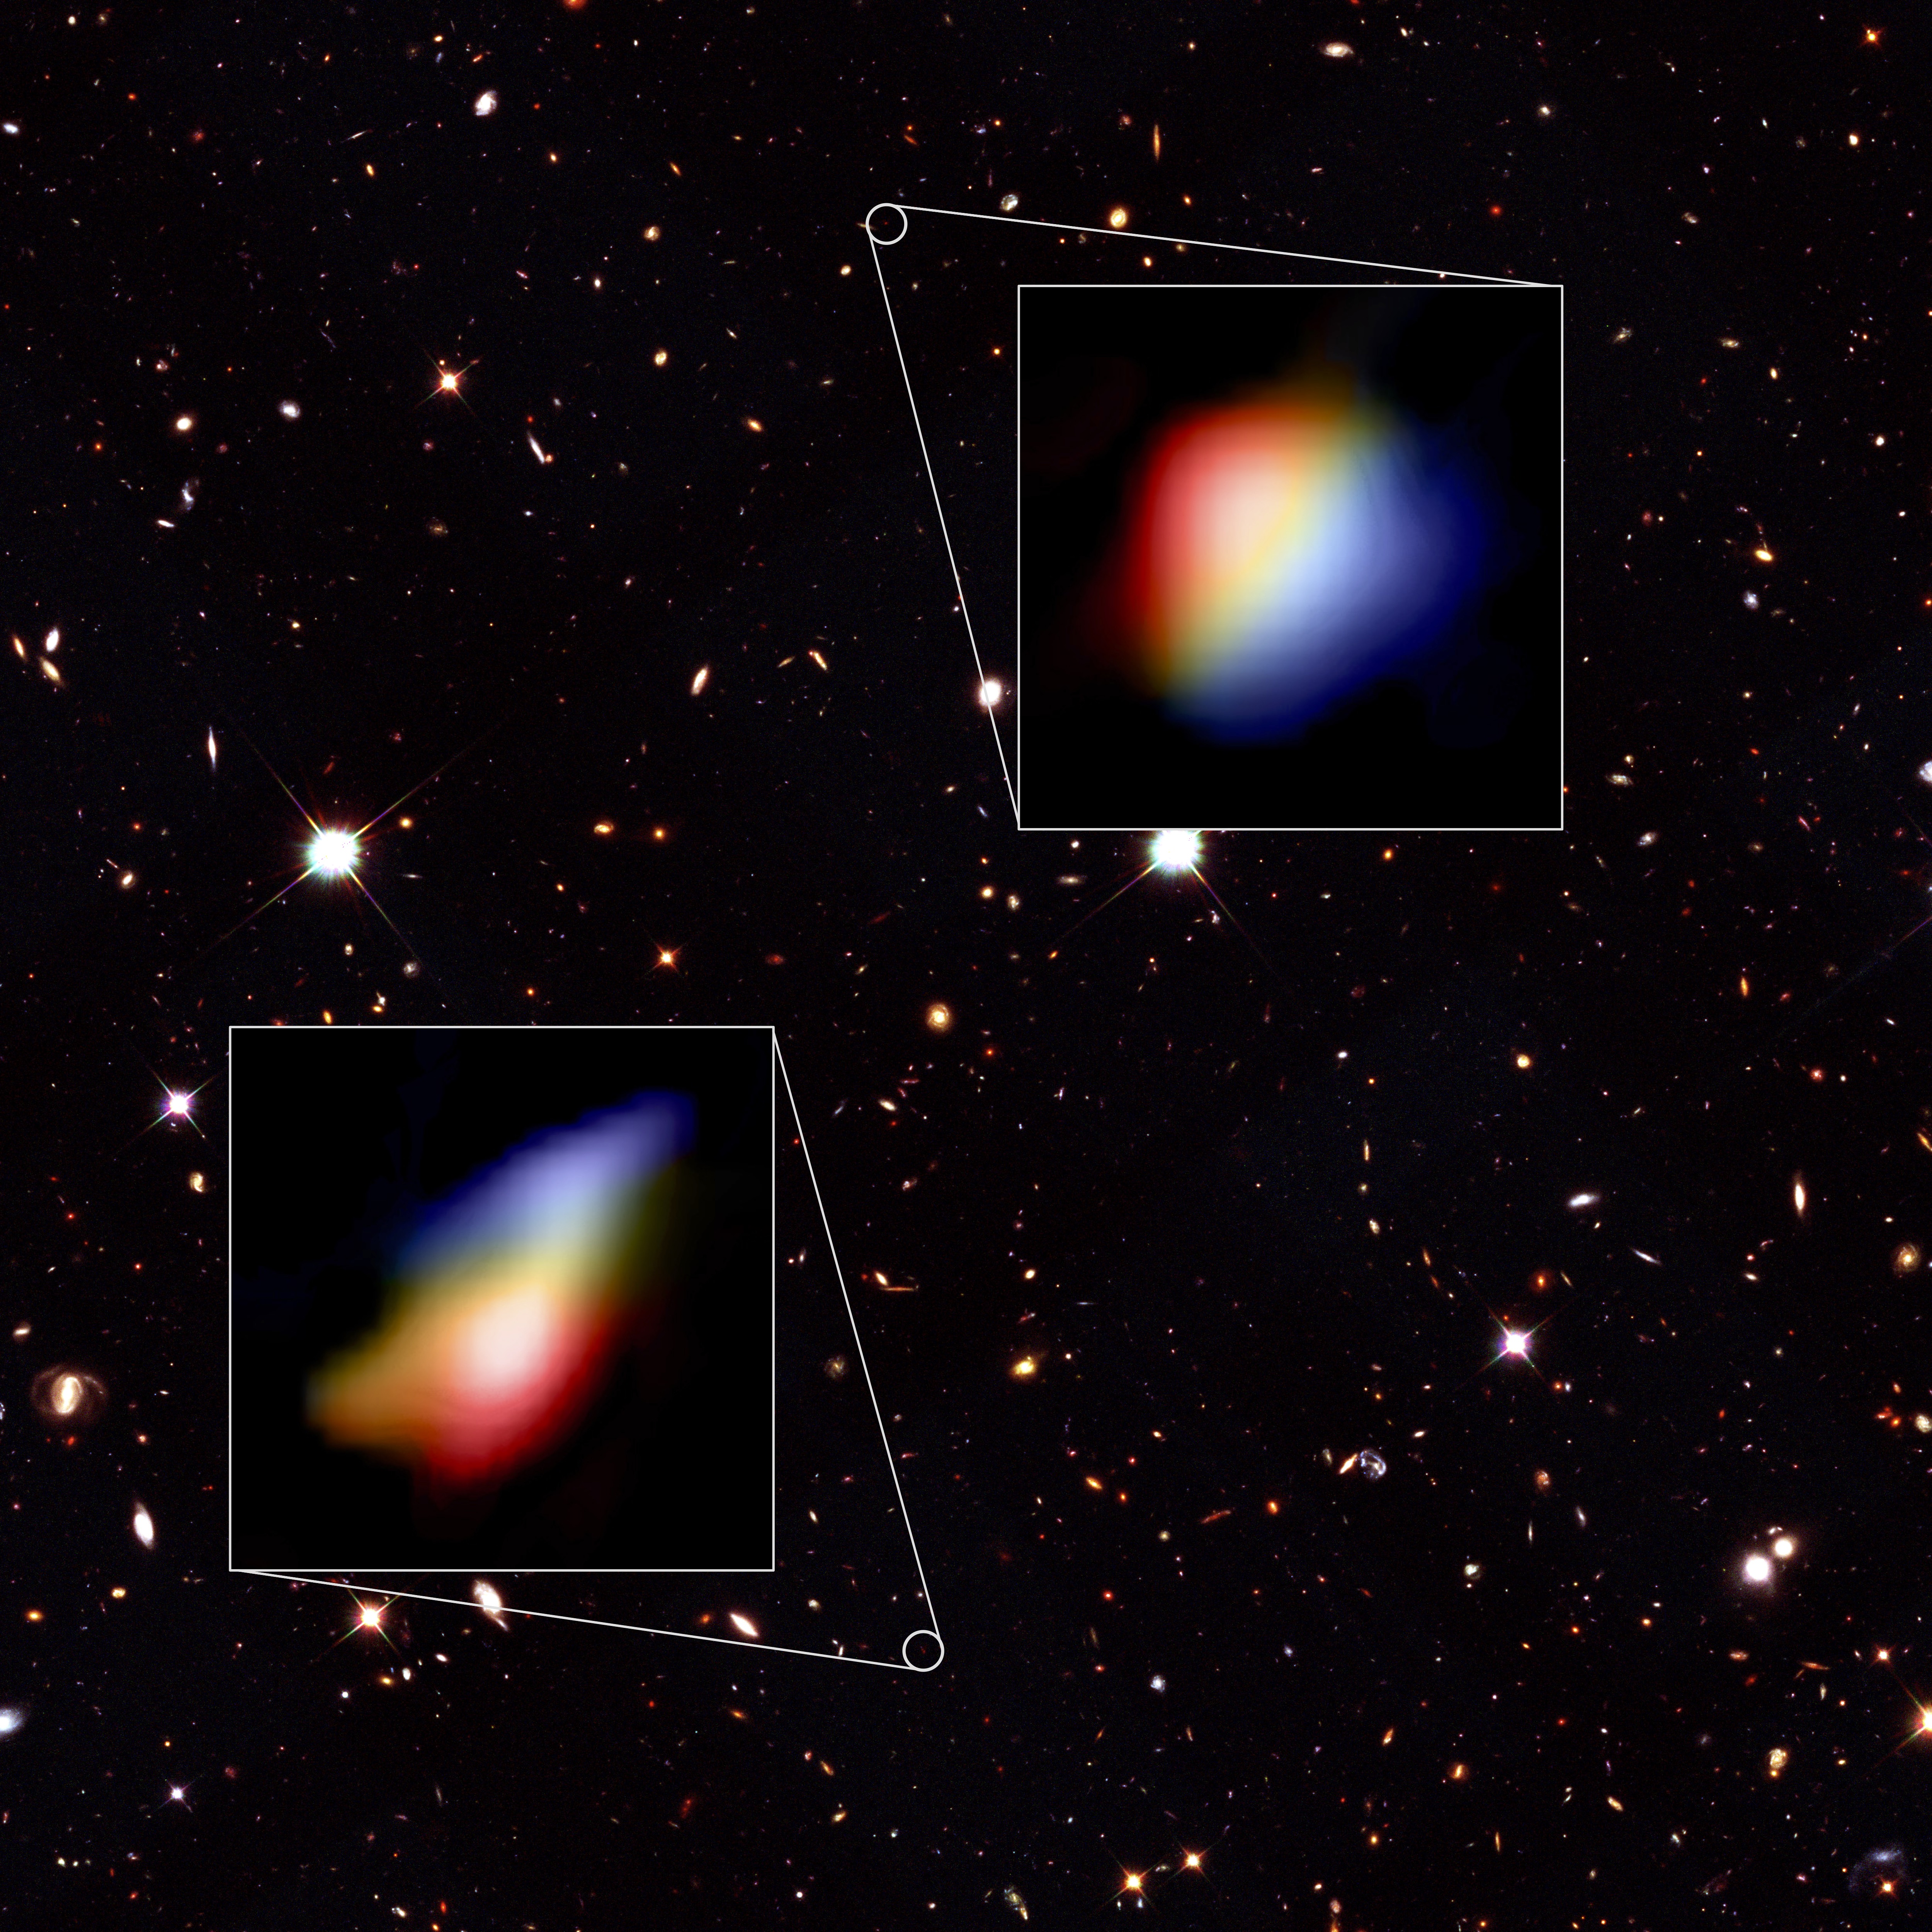 ALMA images of rotating galaxies on a background from the Hubble Space Telescope